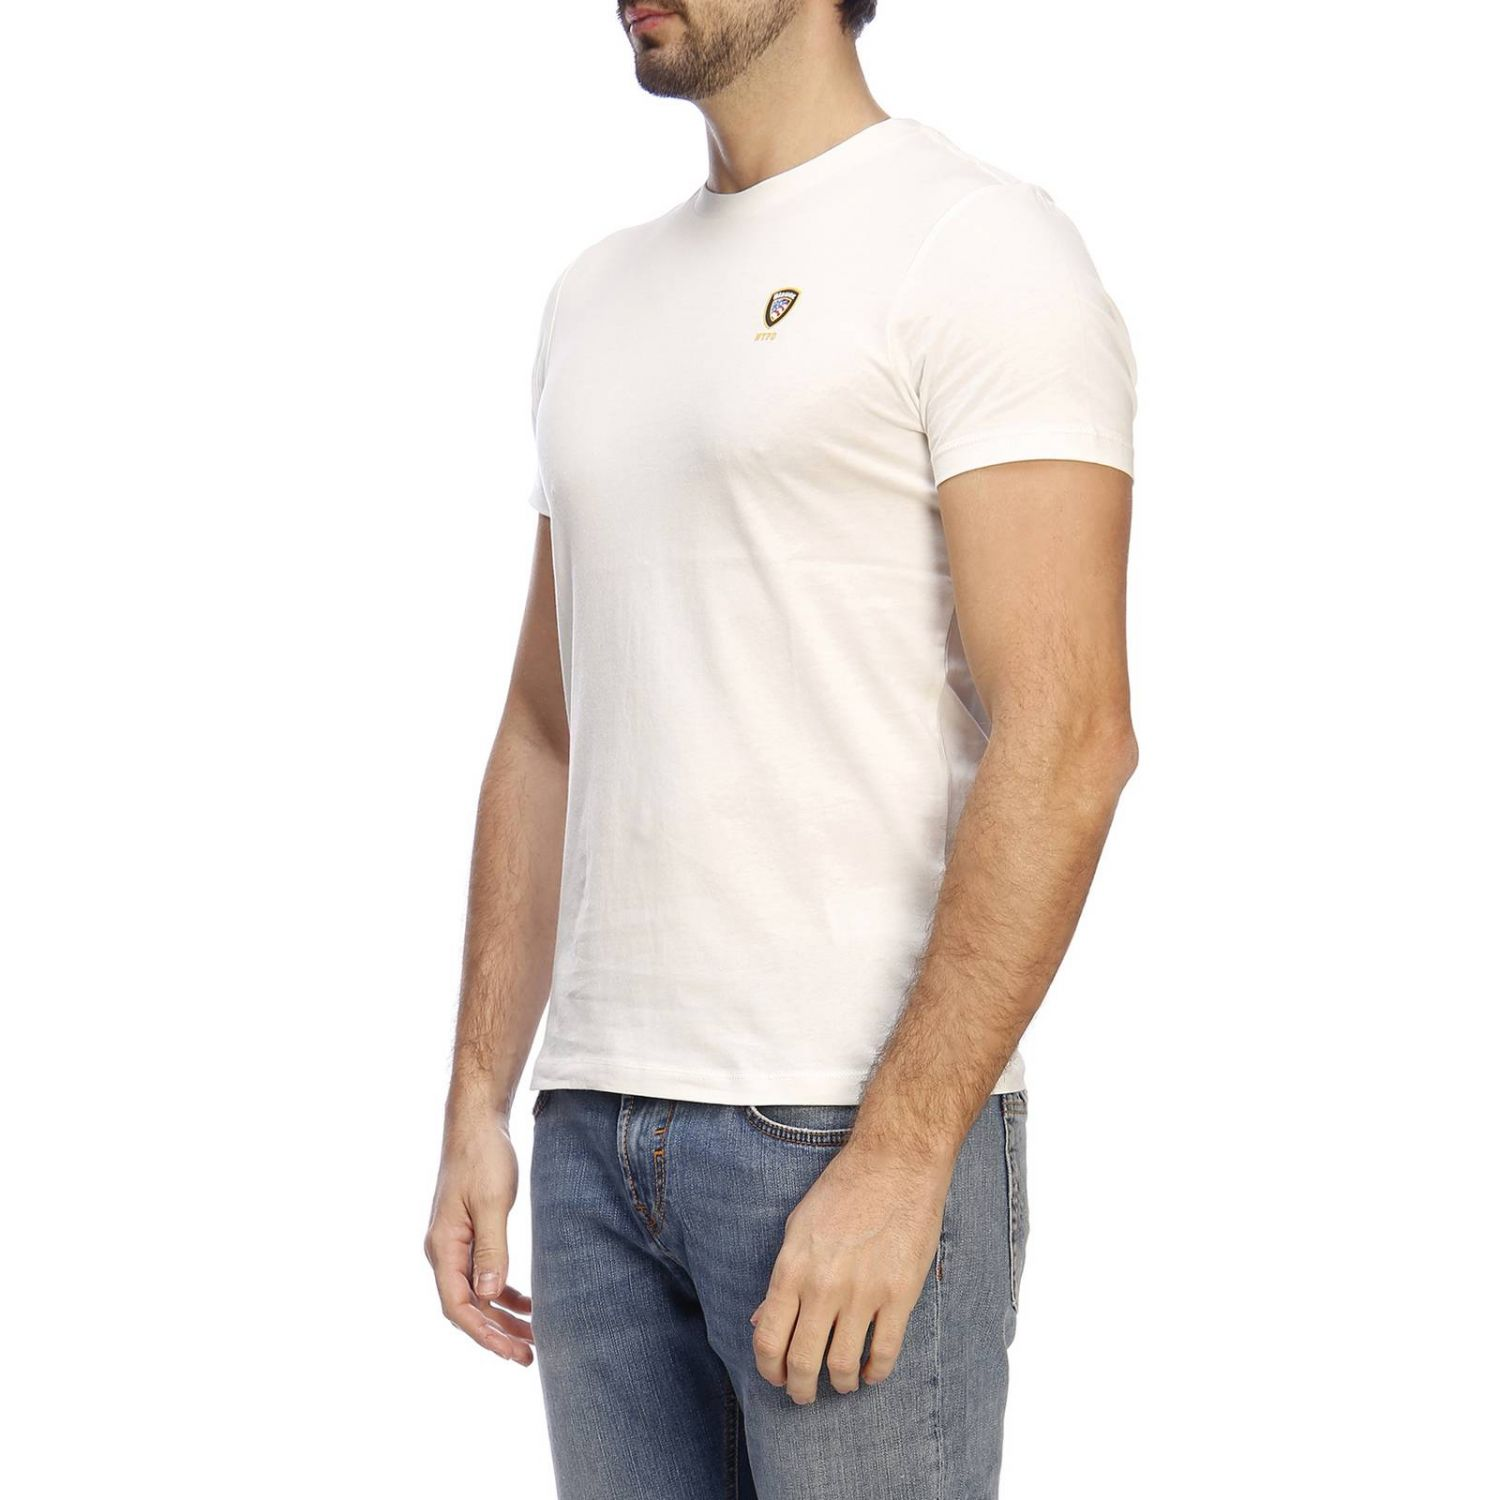 T-shirt men Blauer ivory 2